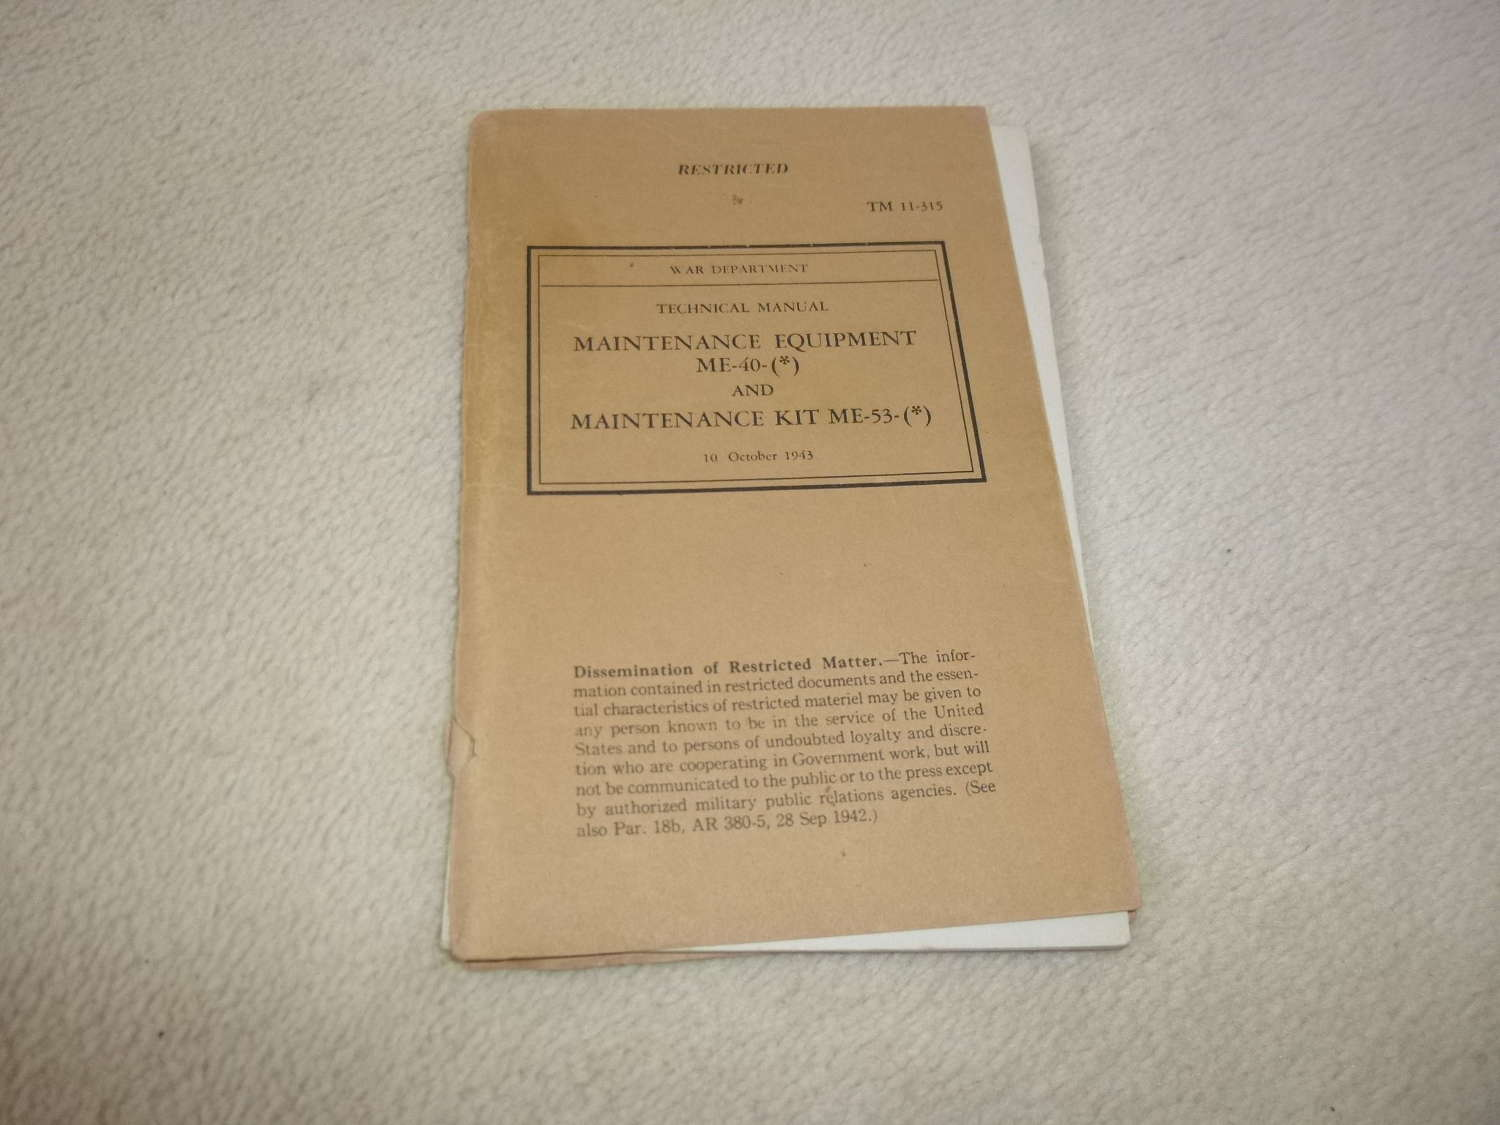 US Army TM11-315 Maintenance Equipment ME-40-53 Manual